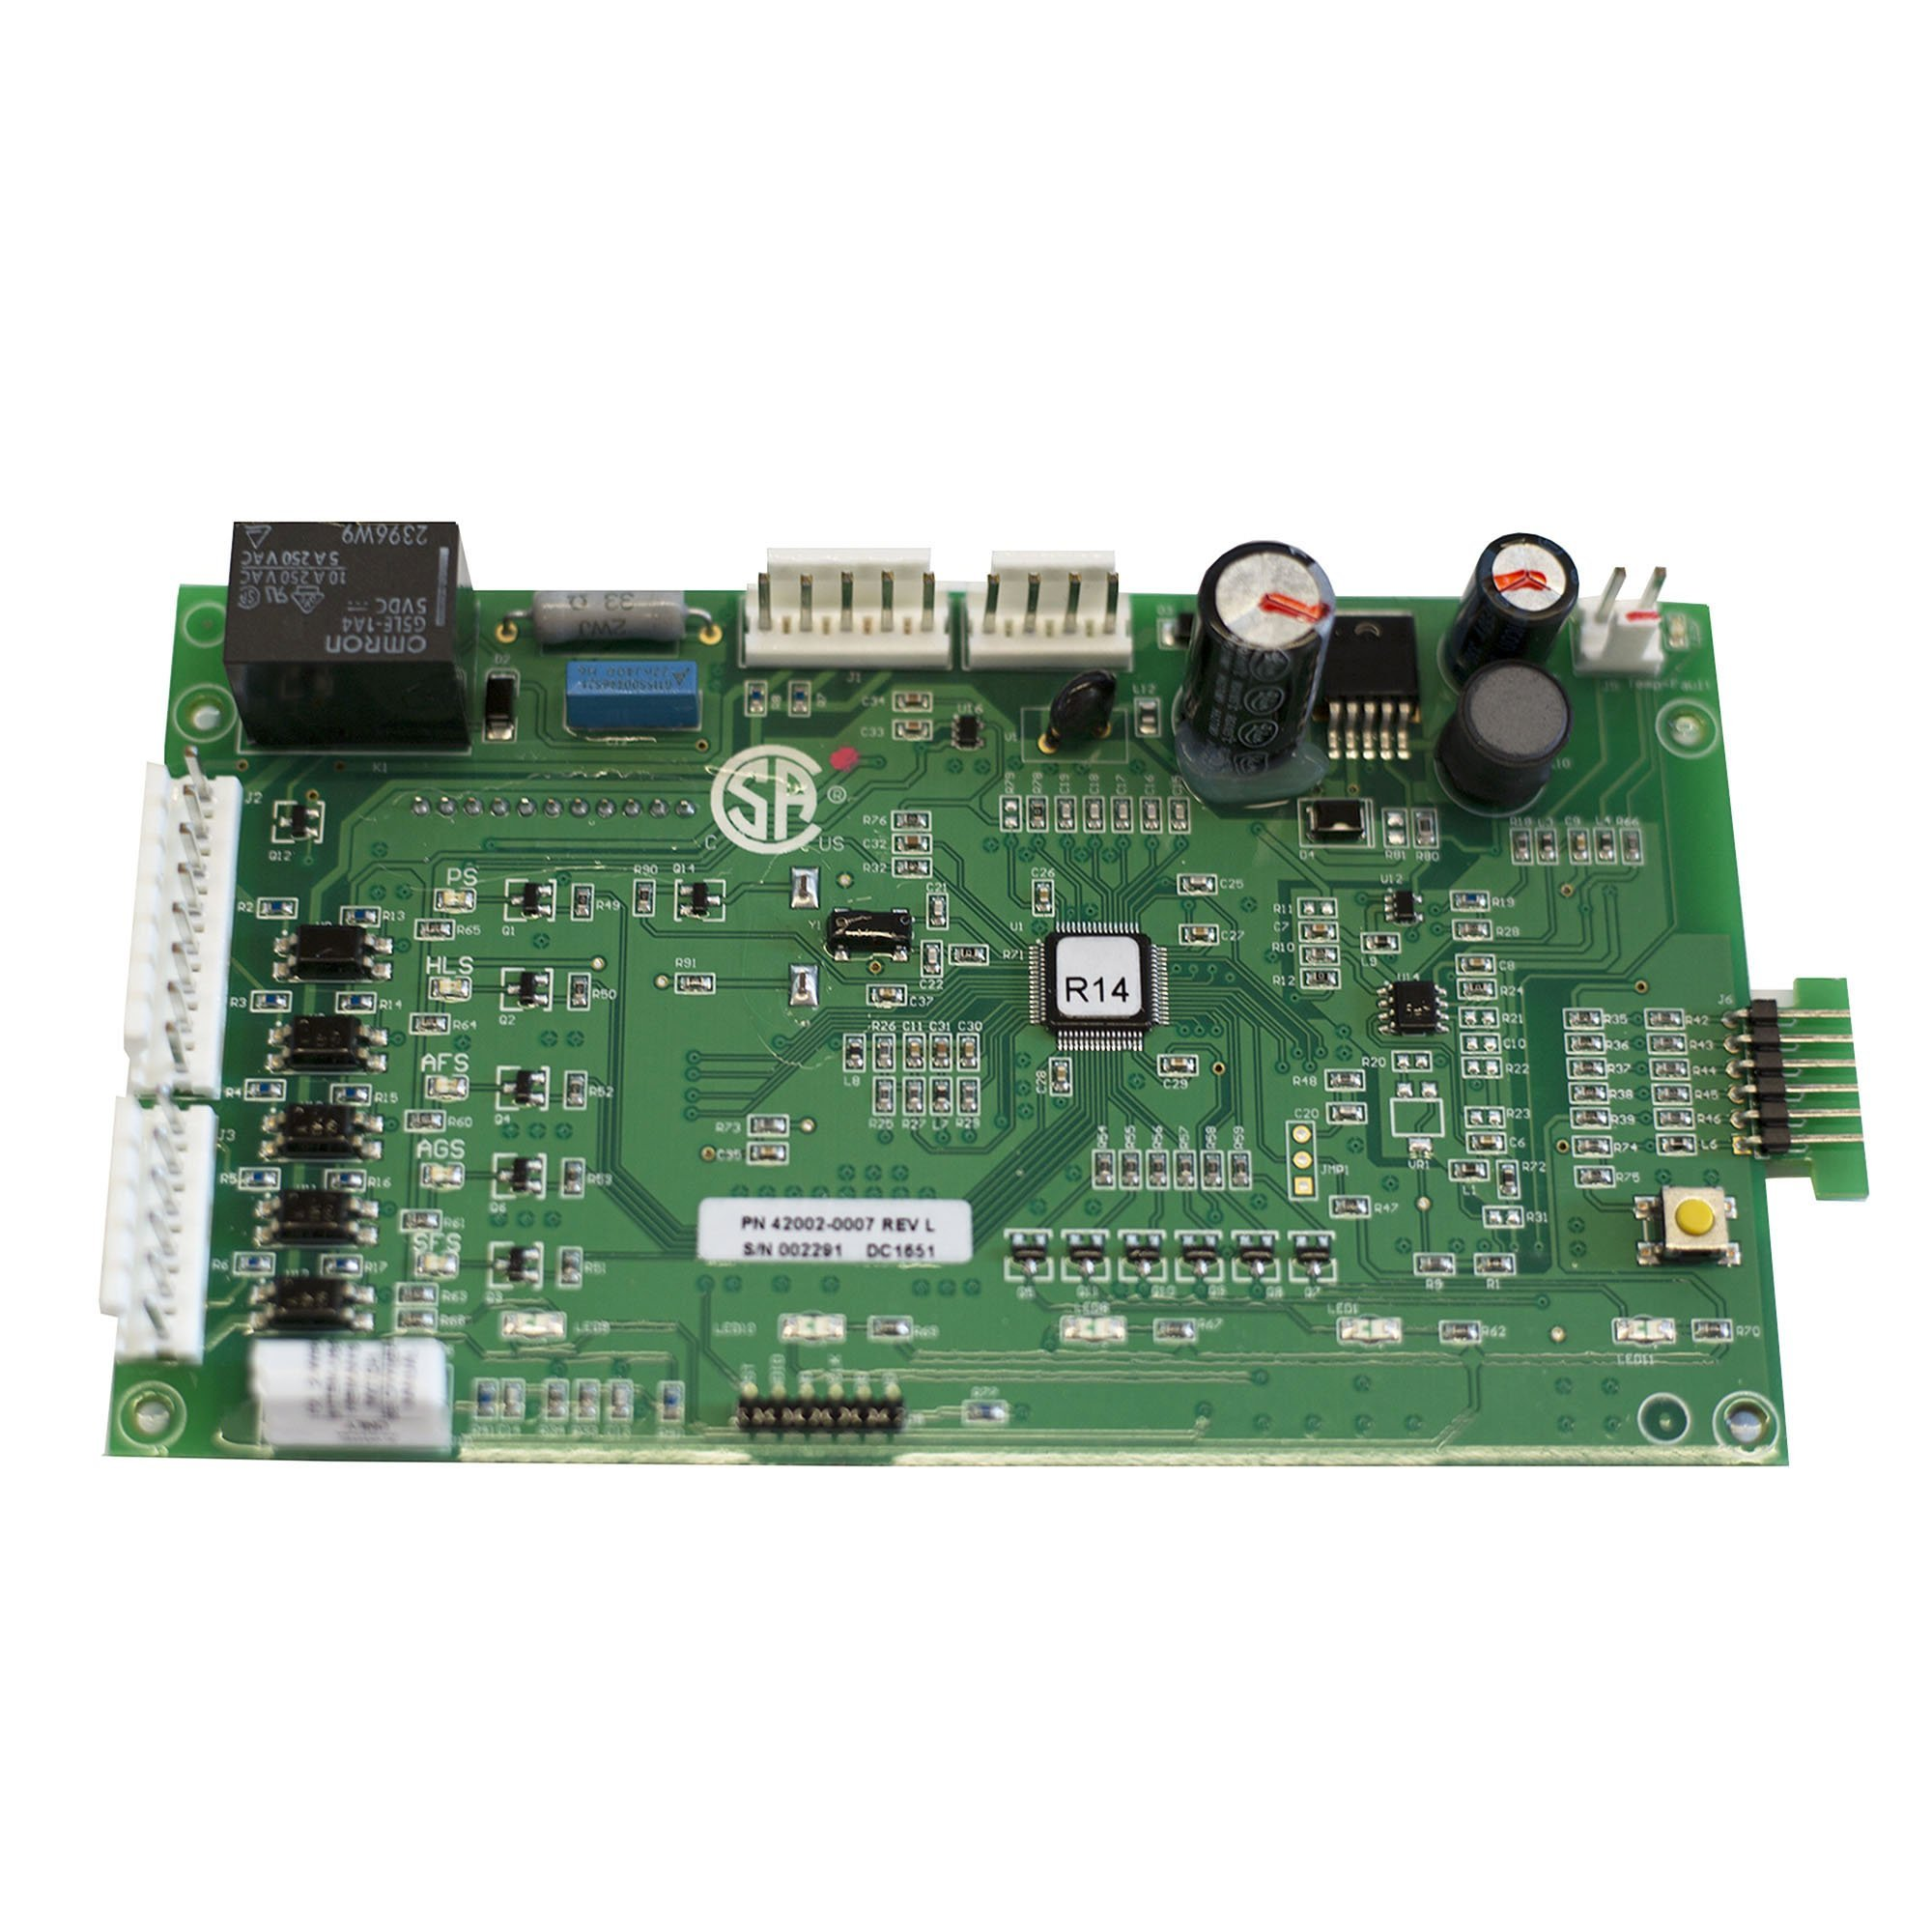 Pentair 42002-0007S Control Board Kit Replacement NA and LP Series Pool/Spa Heater Electrical Systems by Pentair